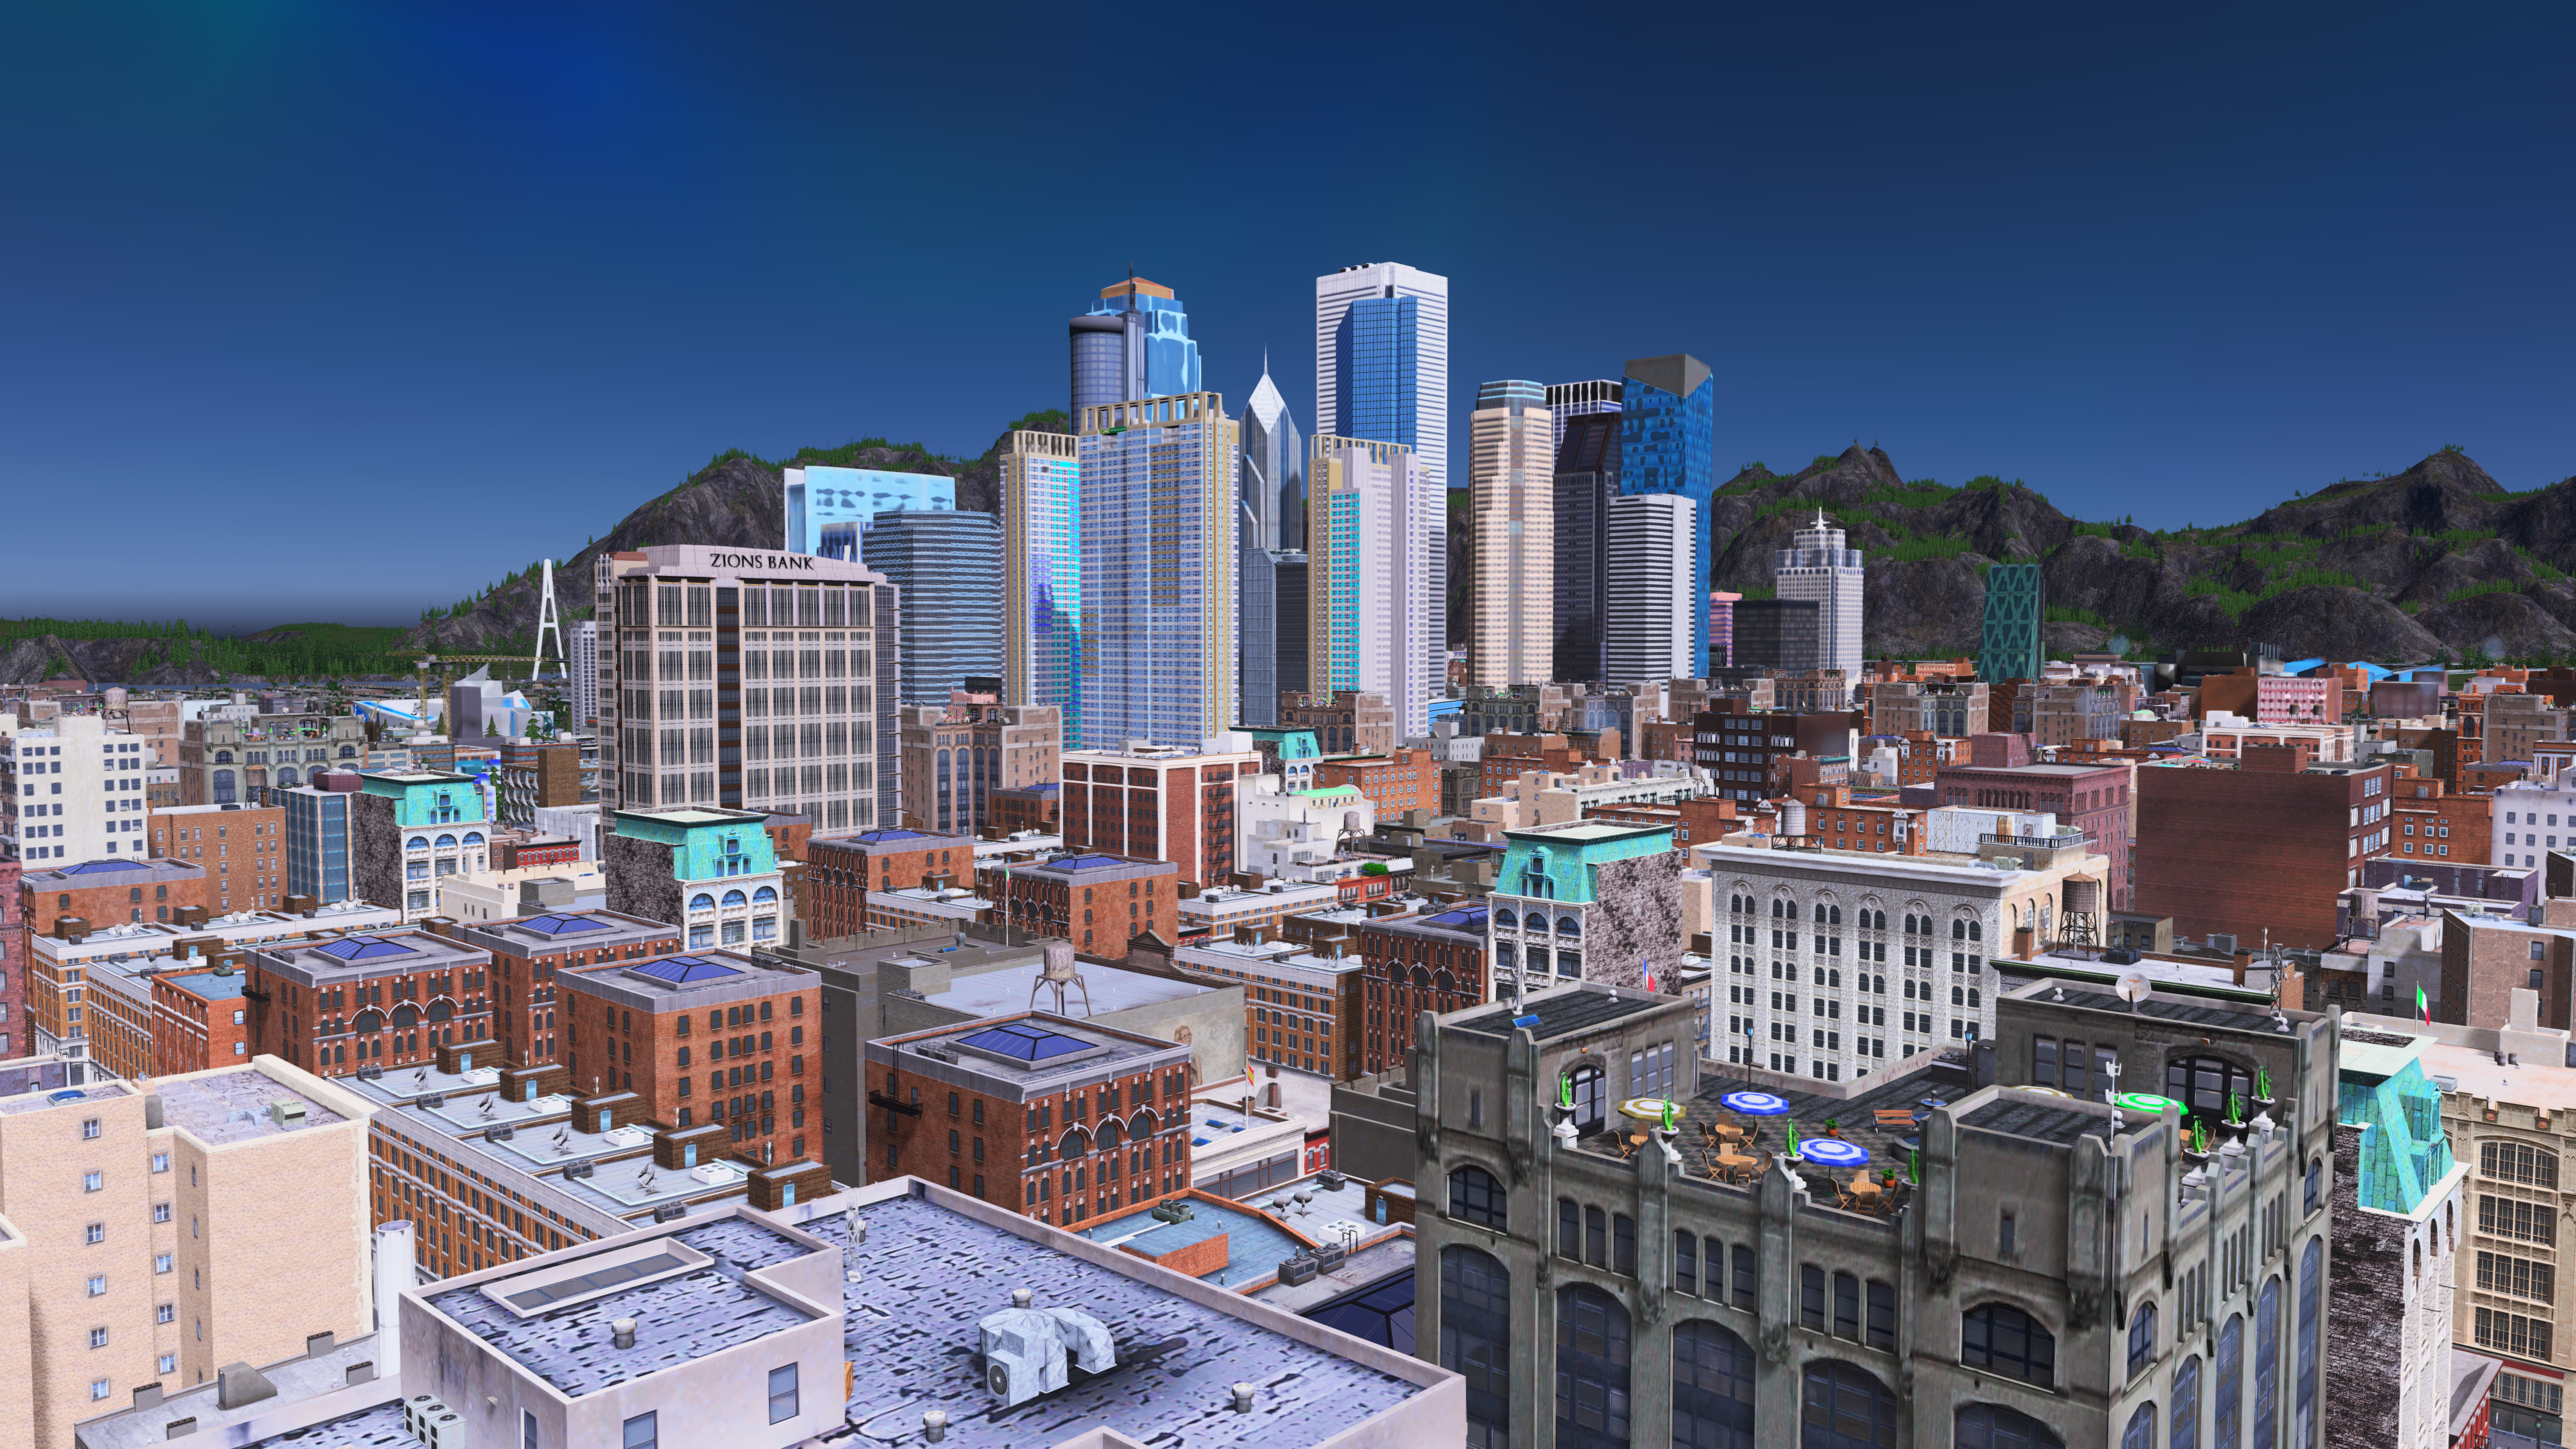 city_rooftops_by_rotype-dbbgwsj.png